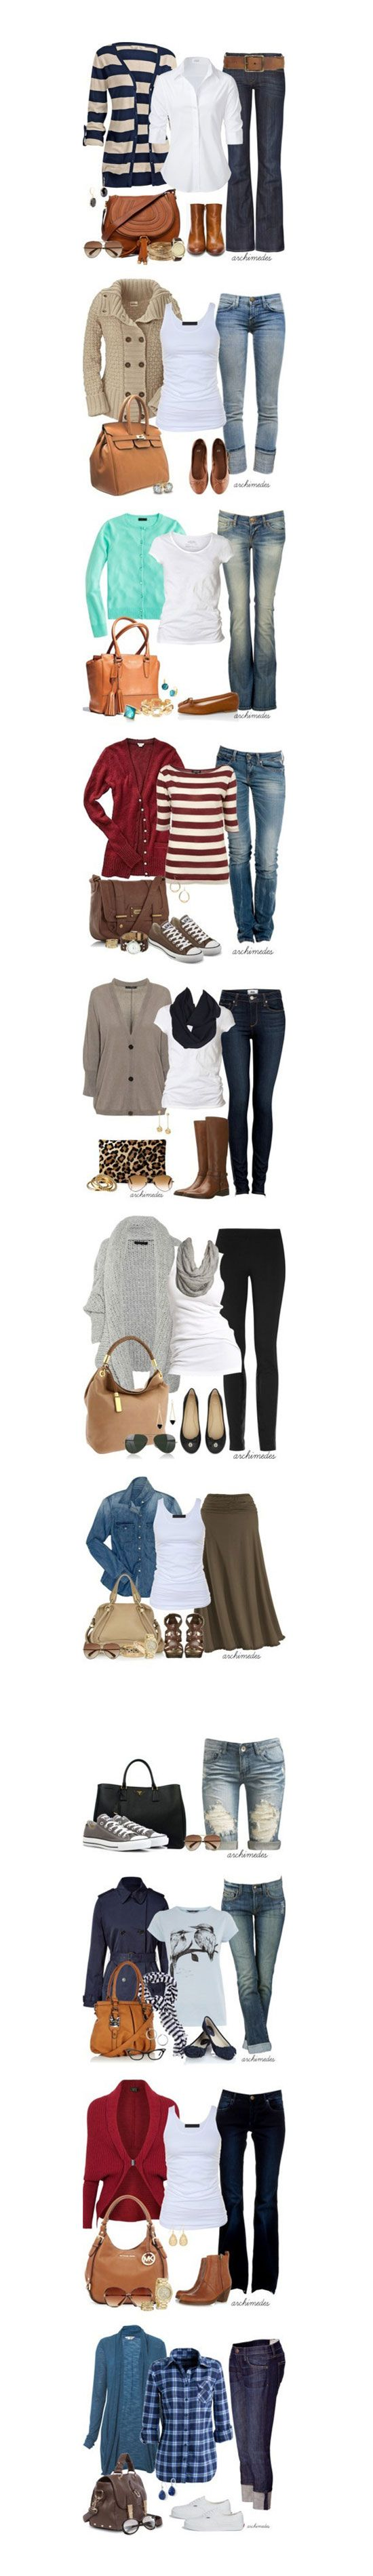 15 Casual Winter Fashion Trends & Looks 2013 For Girls & Women | Girlshue